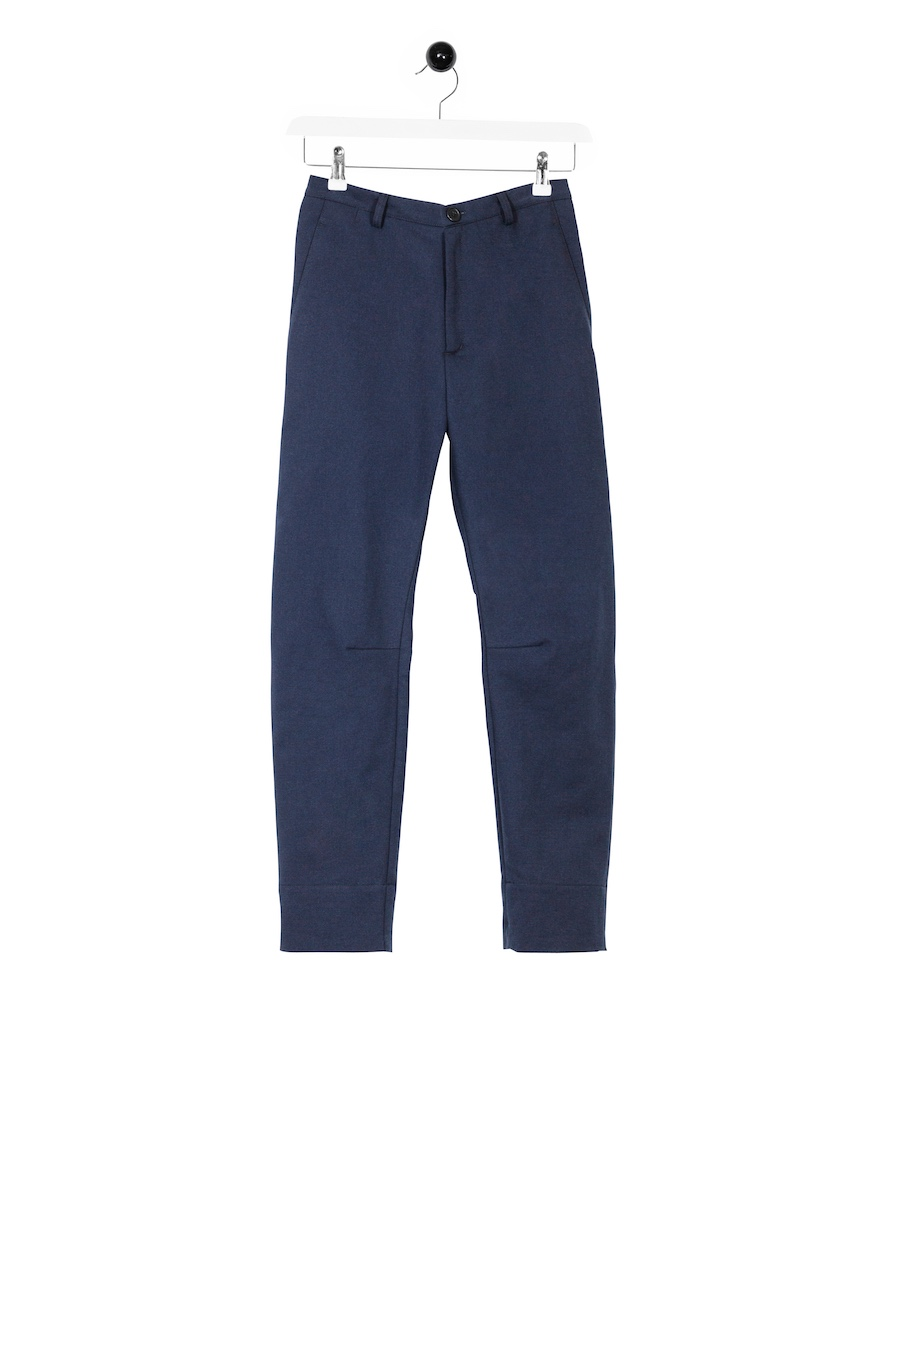 Vrams Trousers